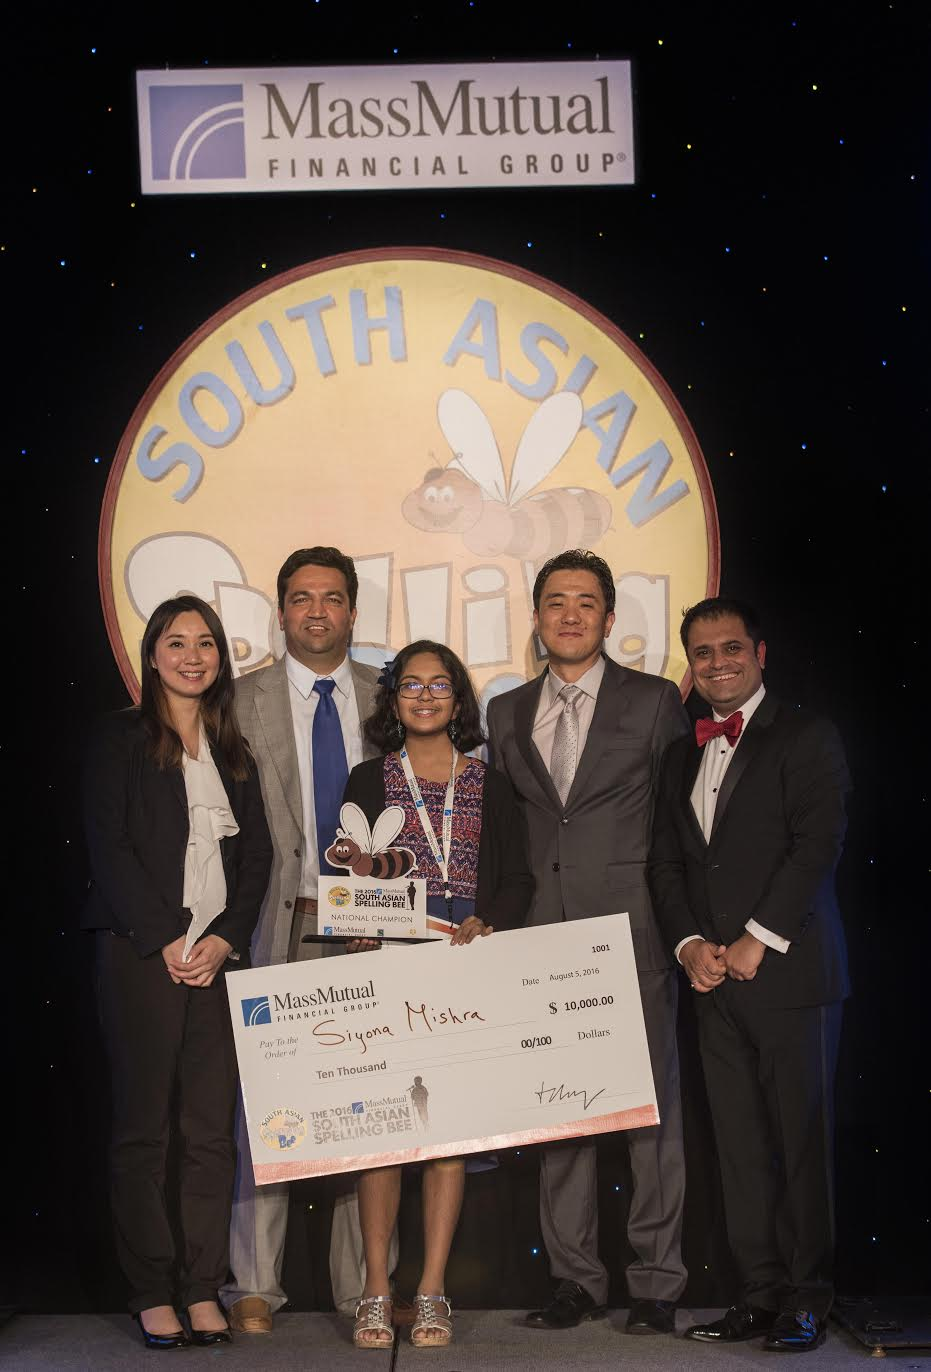 Siyona Mishra Wins 2016 MassMutual South Asian Spelling Bee